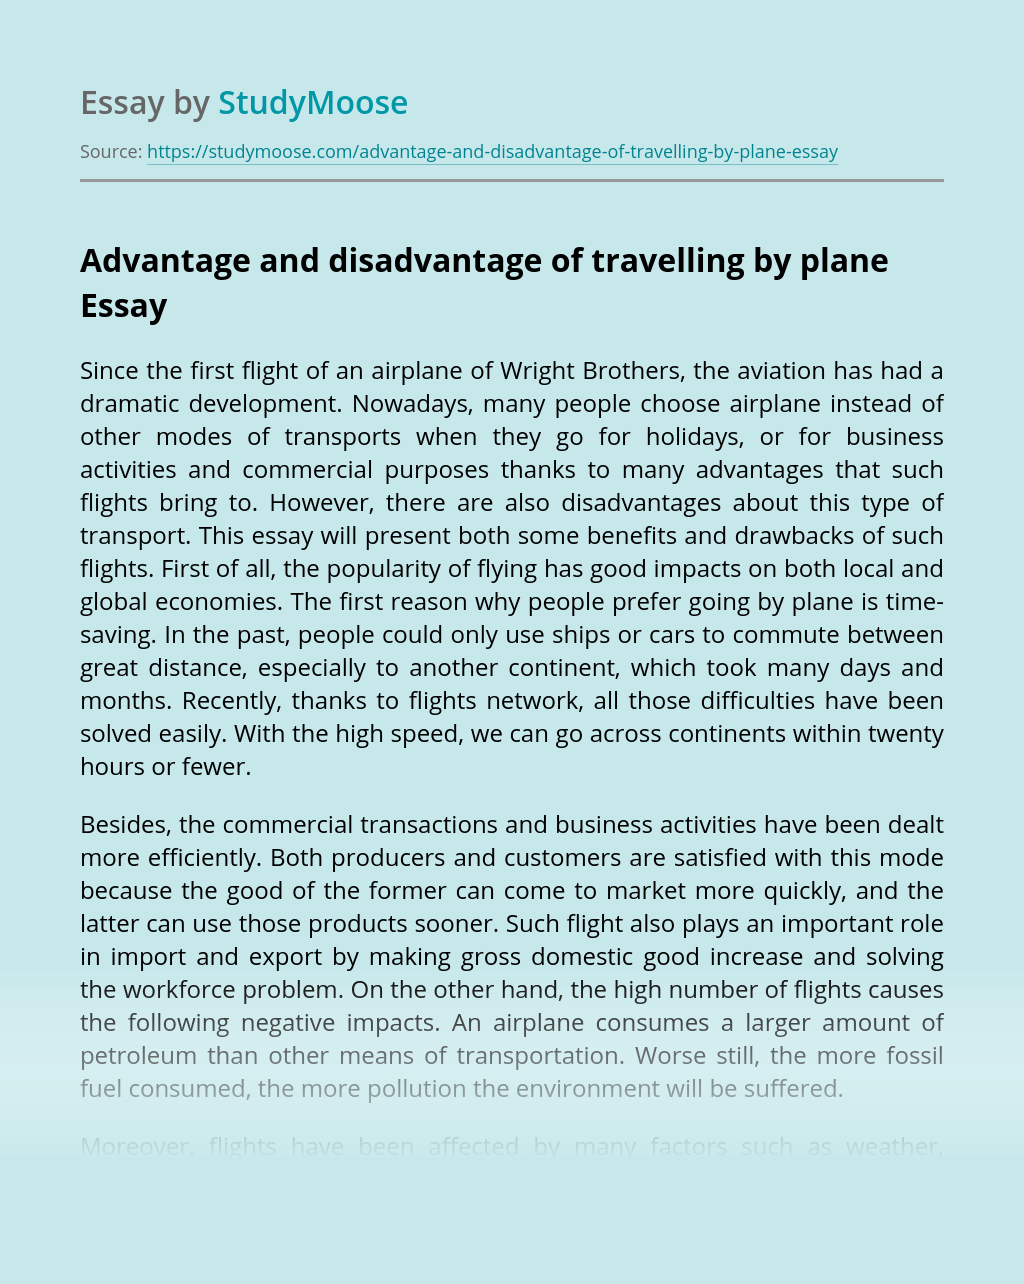 Advantage and disadvantage of travelling by plane